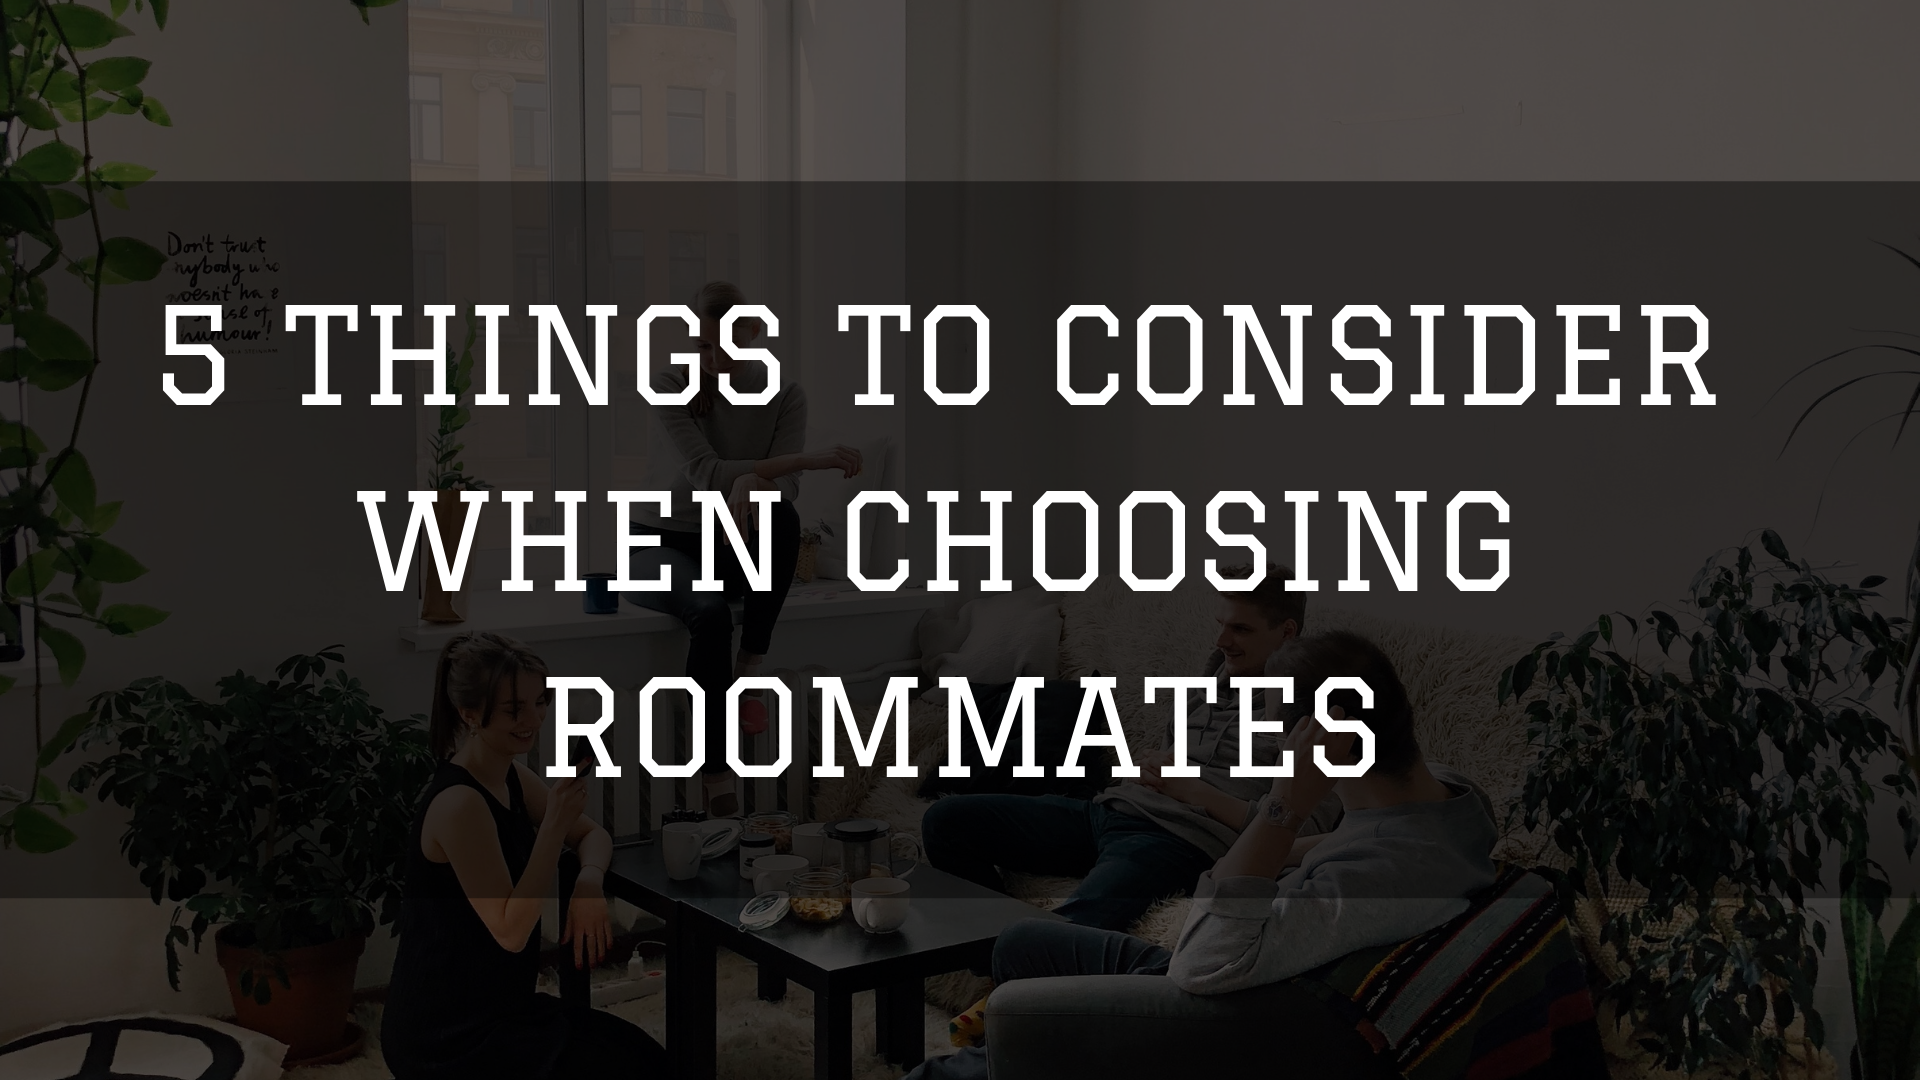 Choosing Roommates